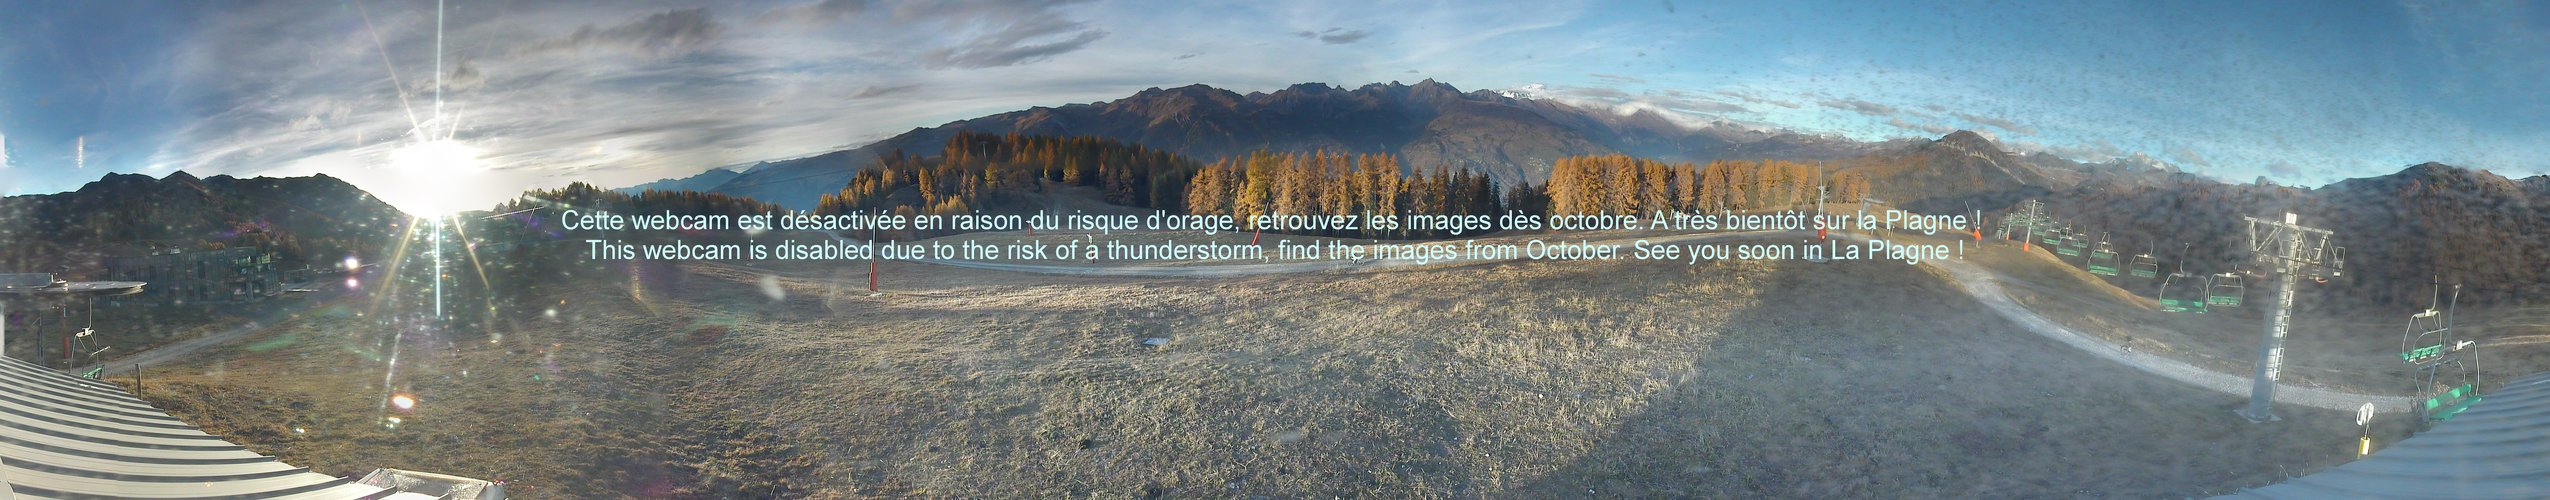 Webcam 2 - La Plagne